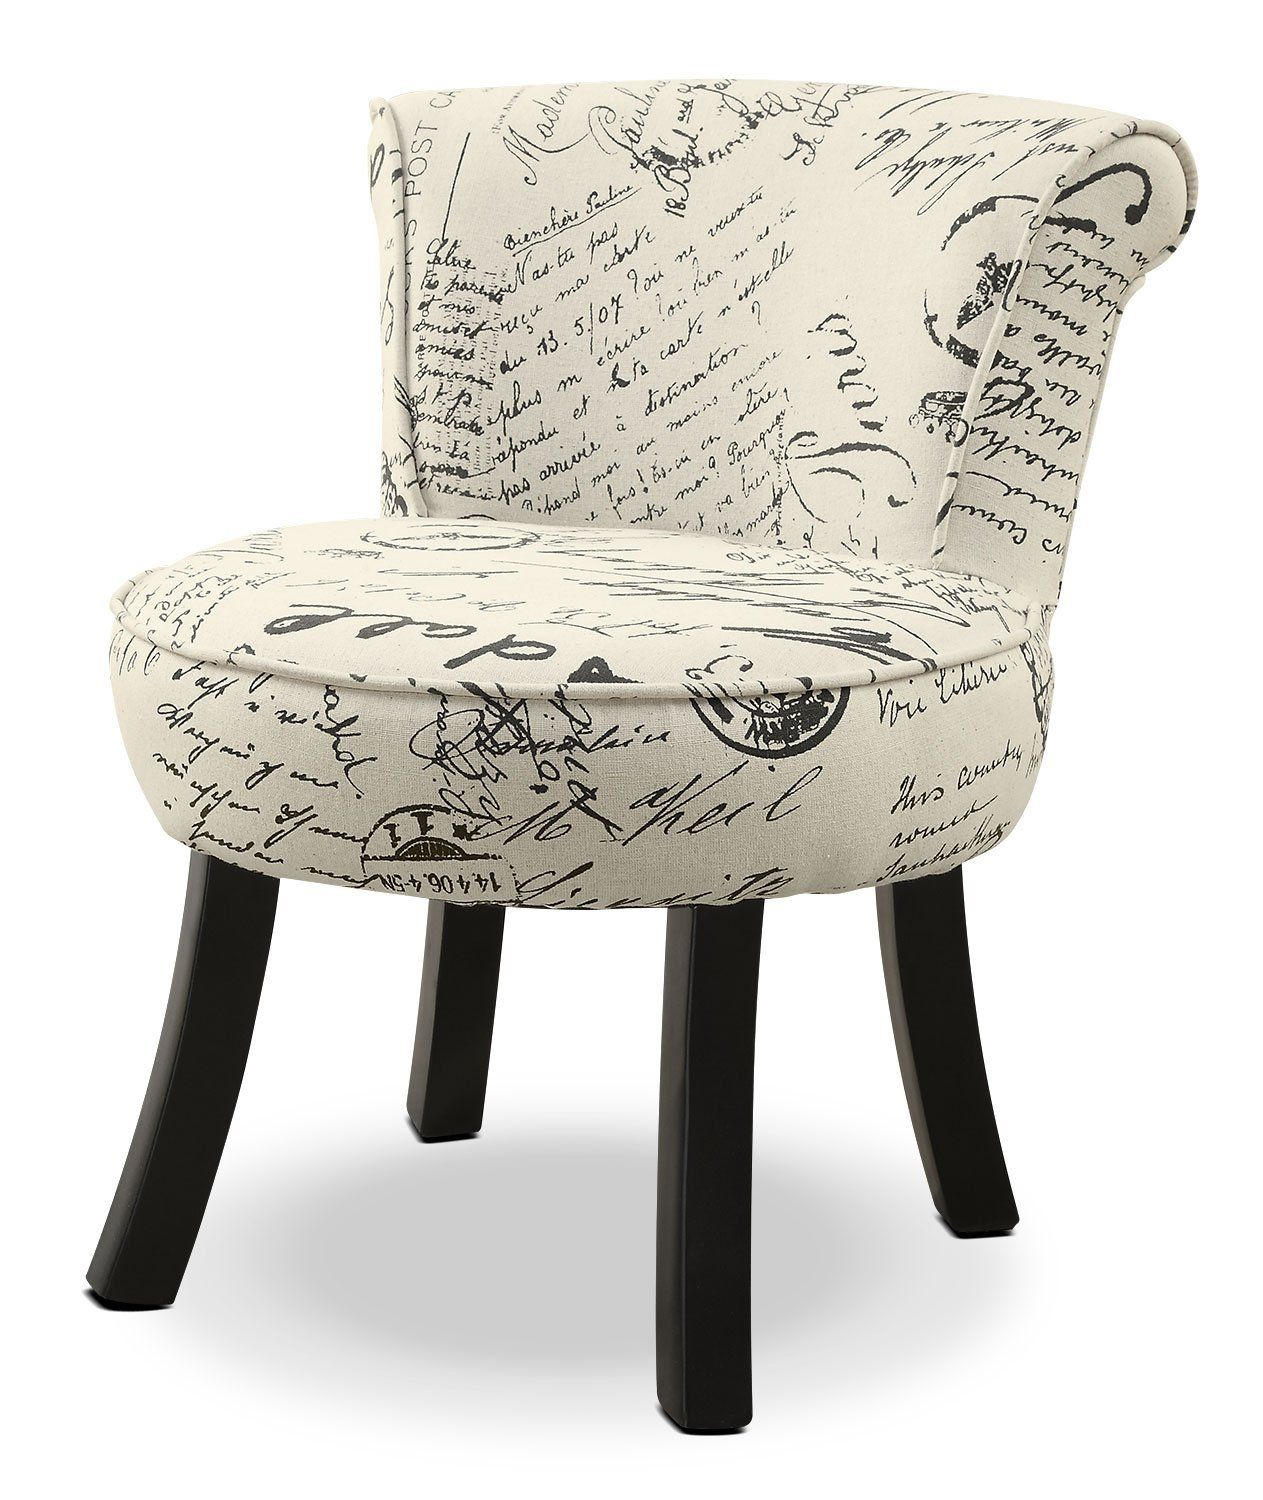 Outstanding Monarch Childrens Accent Chair French Script In 2019 Ocoug Best Dining Table And Chair Ideas Images Ocougorg